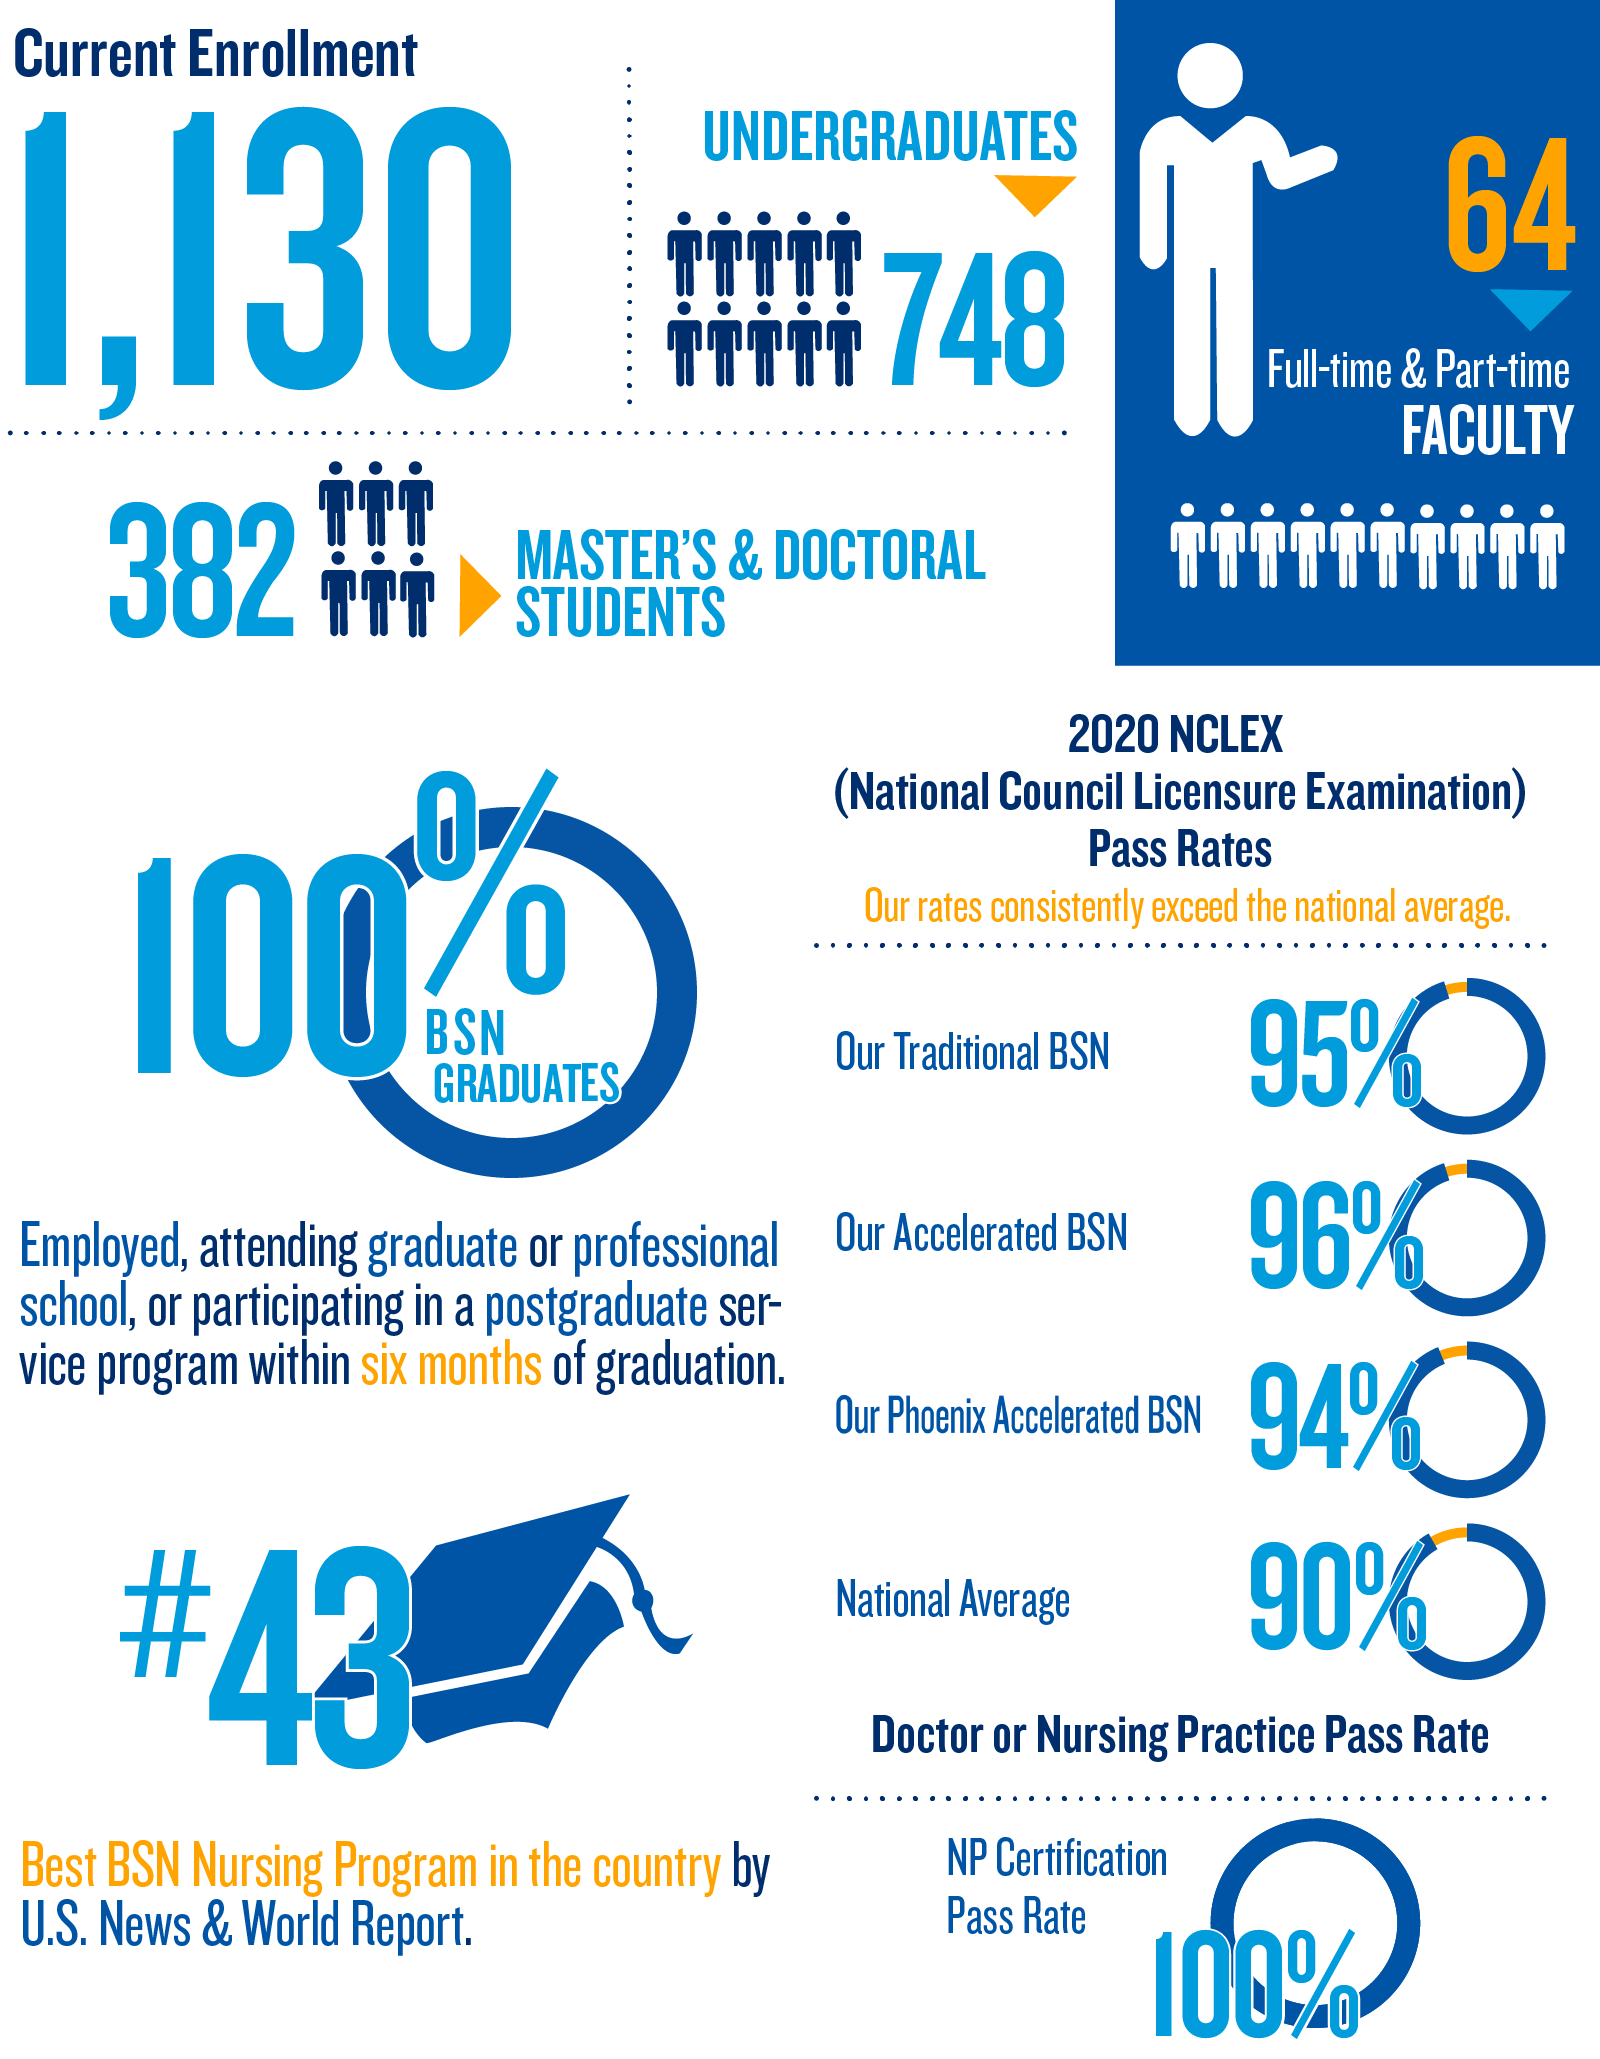 100% grads employed, attending graduate or professional school, or participating in a postgraduate service program within six months of graduation